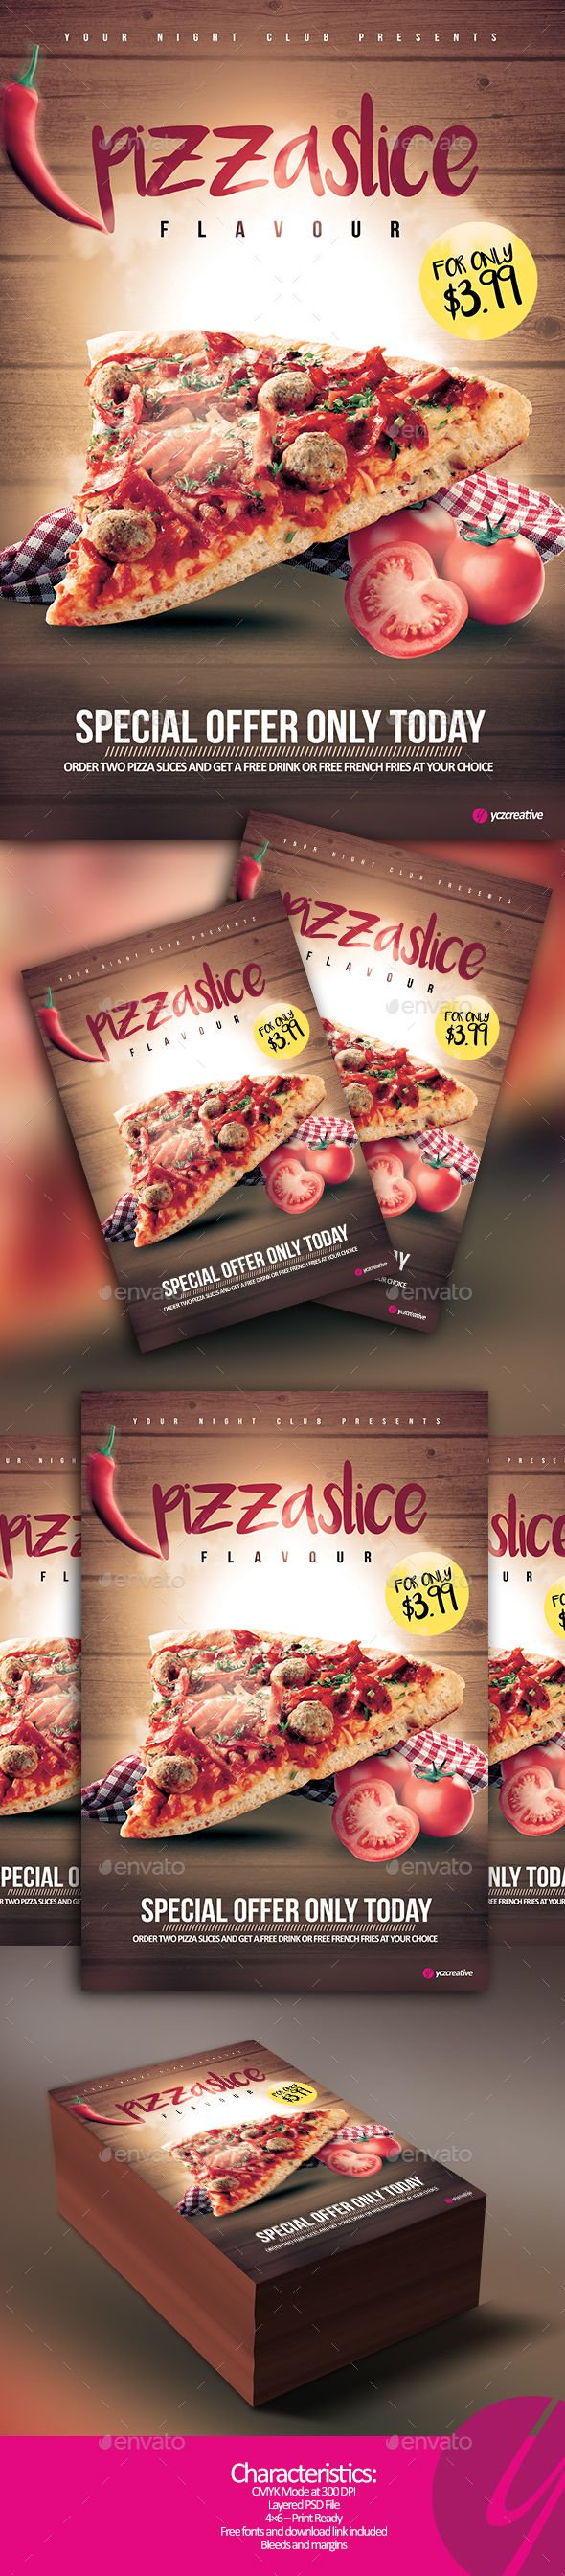 Pizza Slice Flavour by YczCreative Pizza Slice Flavour 鈥?20Flyer Special designed for your locationCharacteristics: 鈥?20CMYK Mode at 300 DPI 鈥?20PSD File 鈥?204脳6 鈥?20Print Re